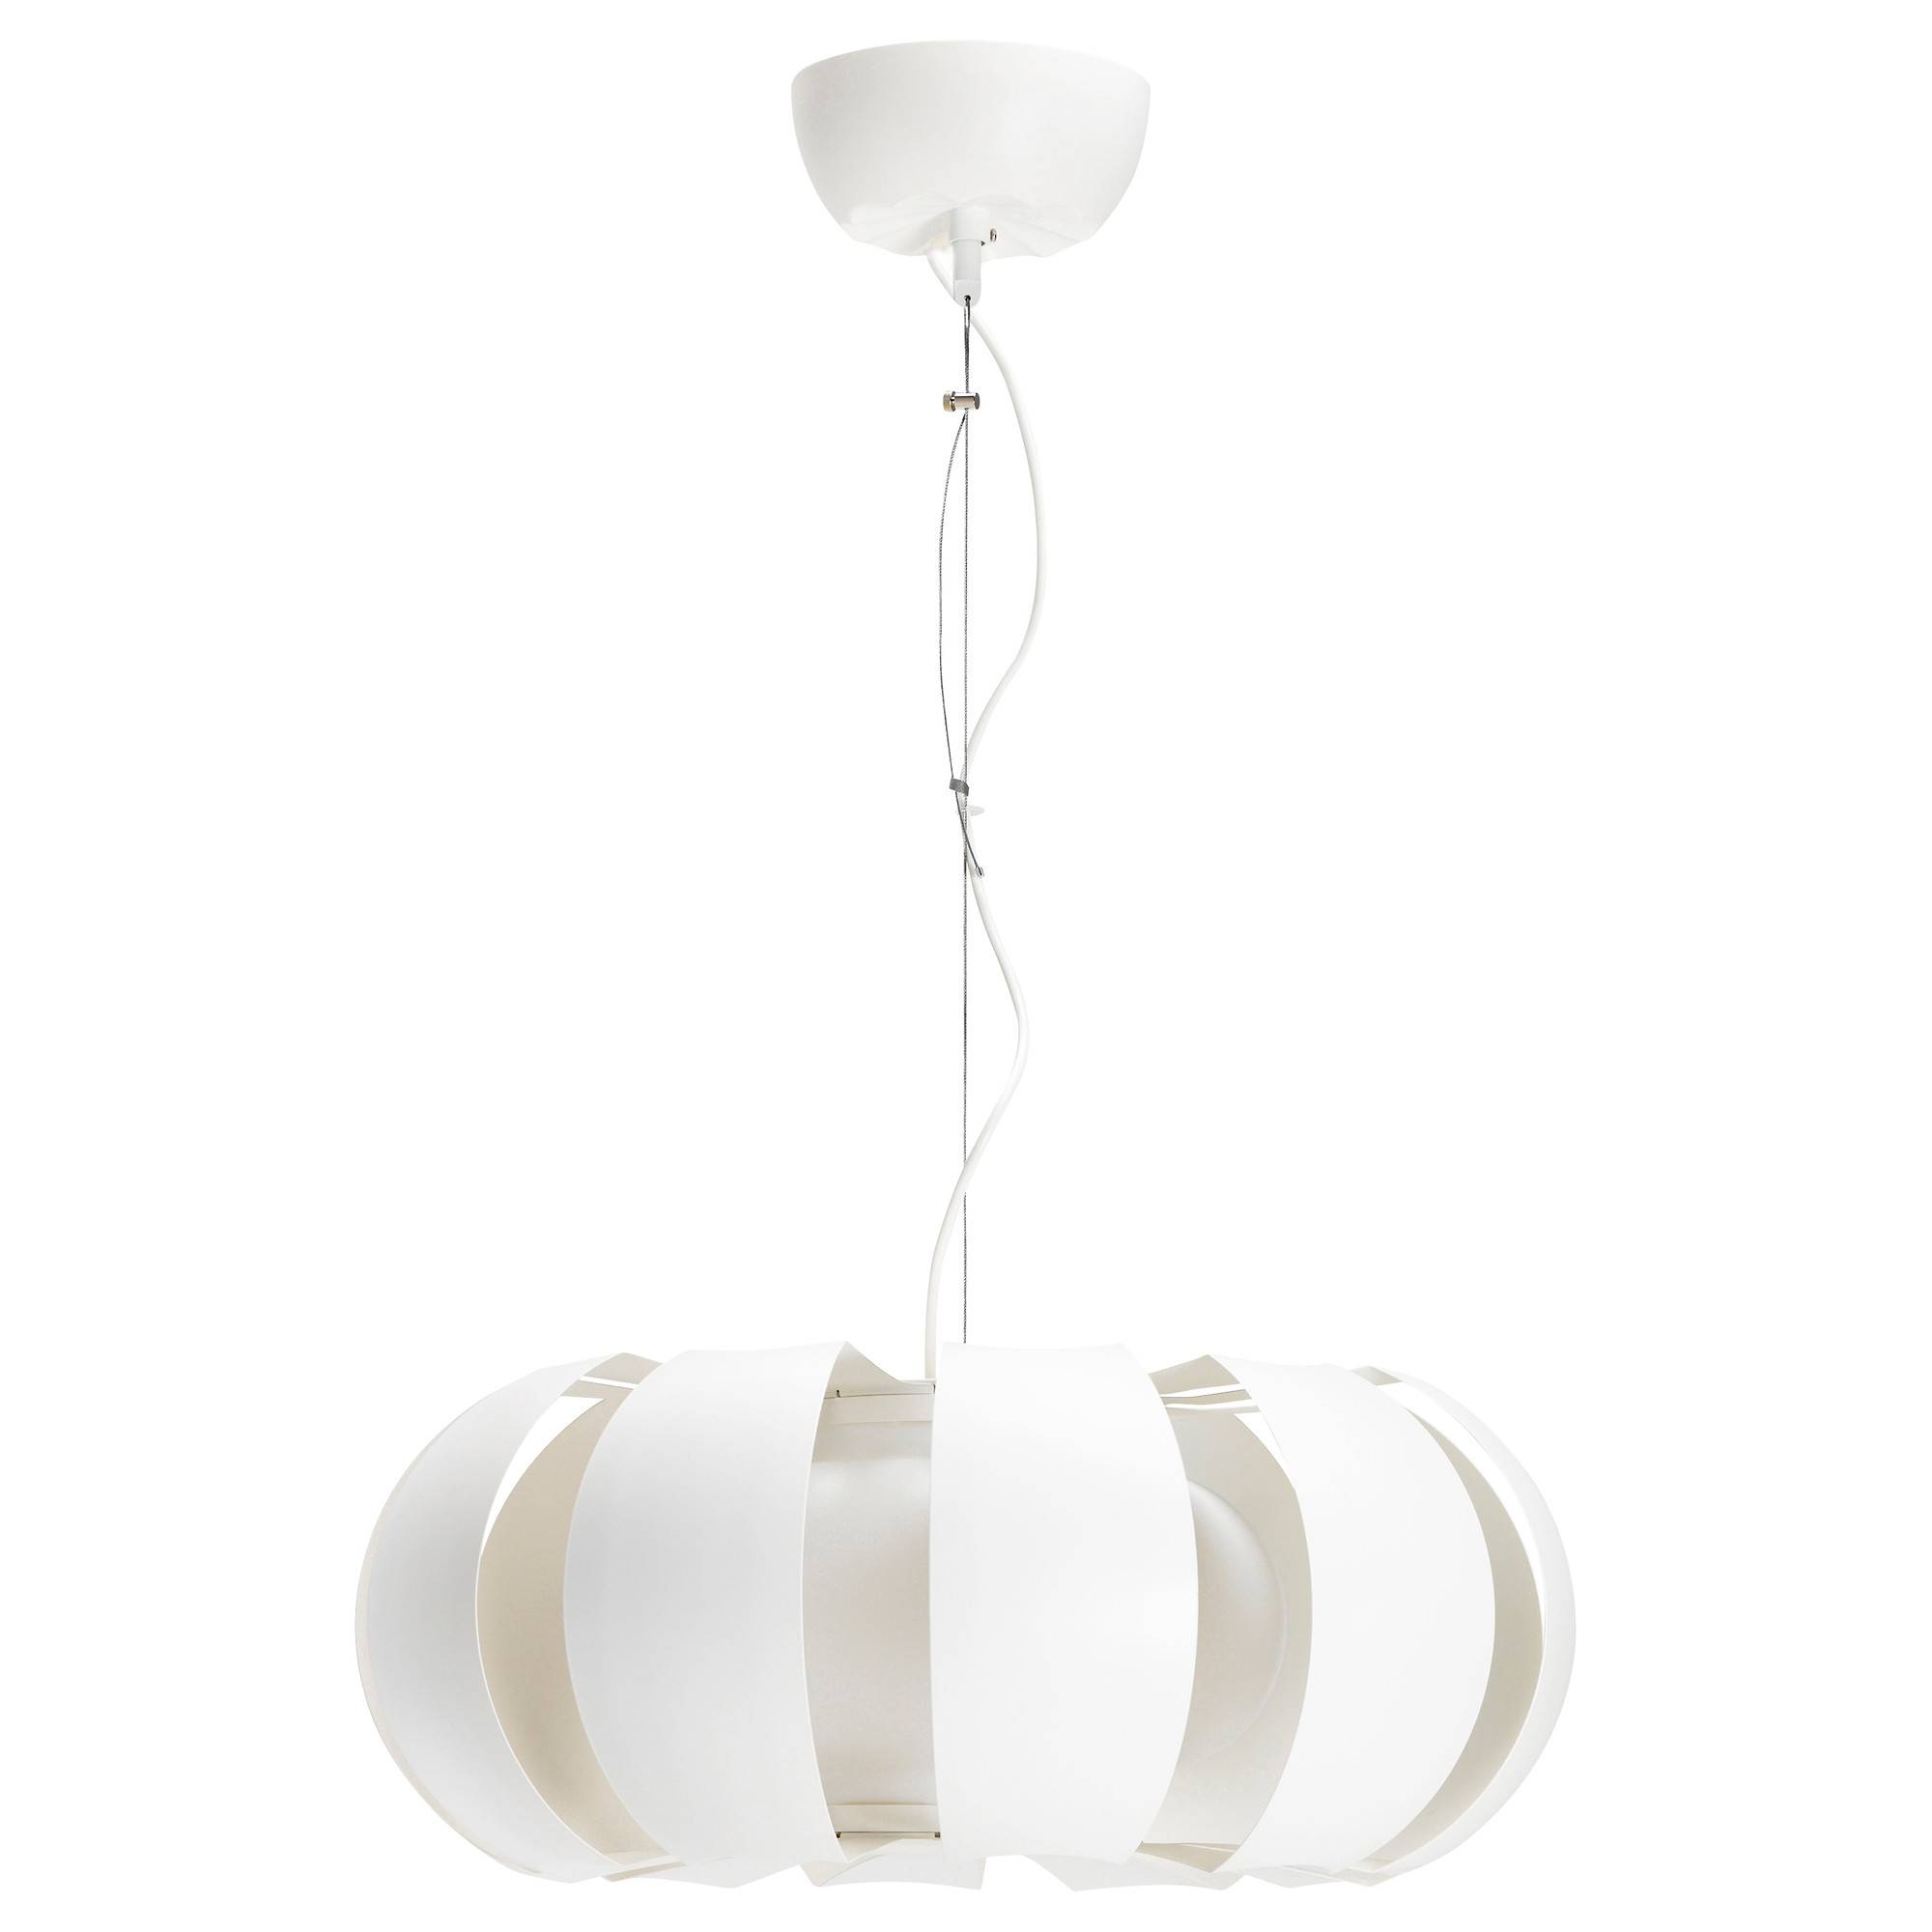 Pendant Lights & Lamp Shades – Ikea Within Ikea Pendants (View 12 of 15)